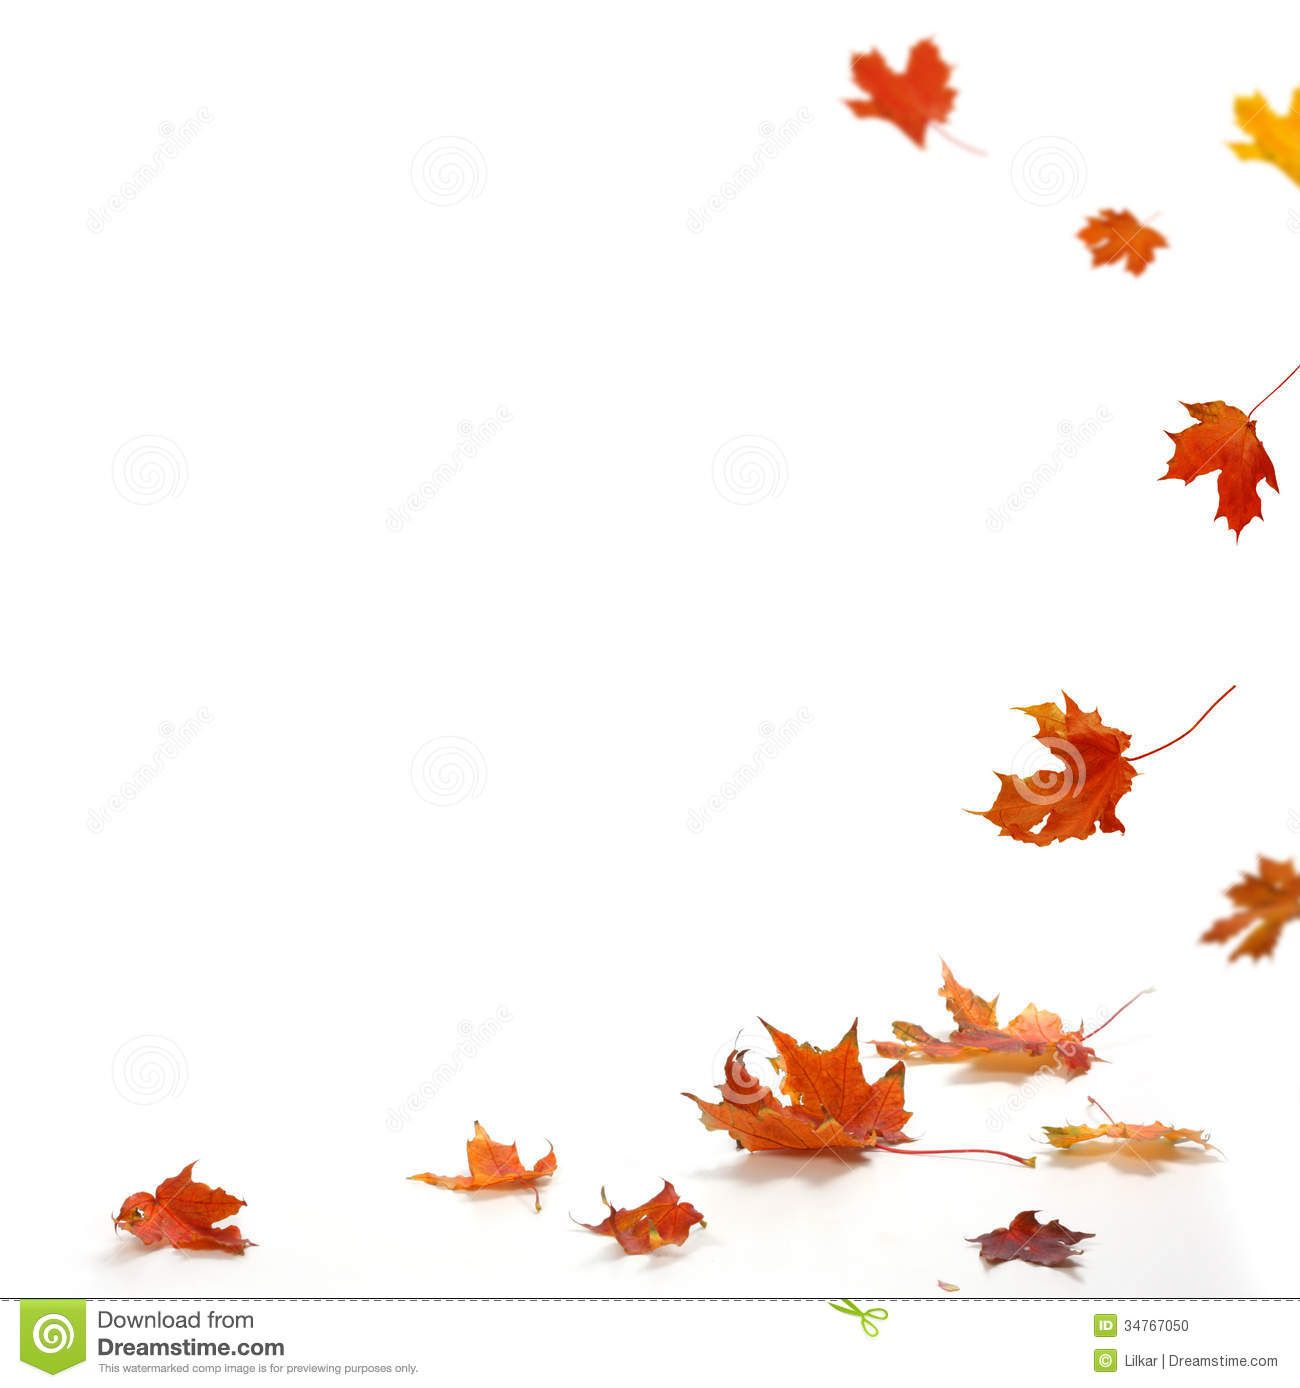 maple leaves falling down - Cerca con Google | Leaves and ...